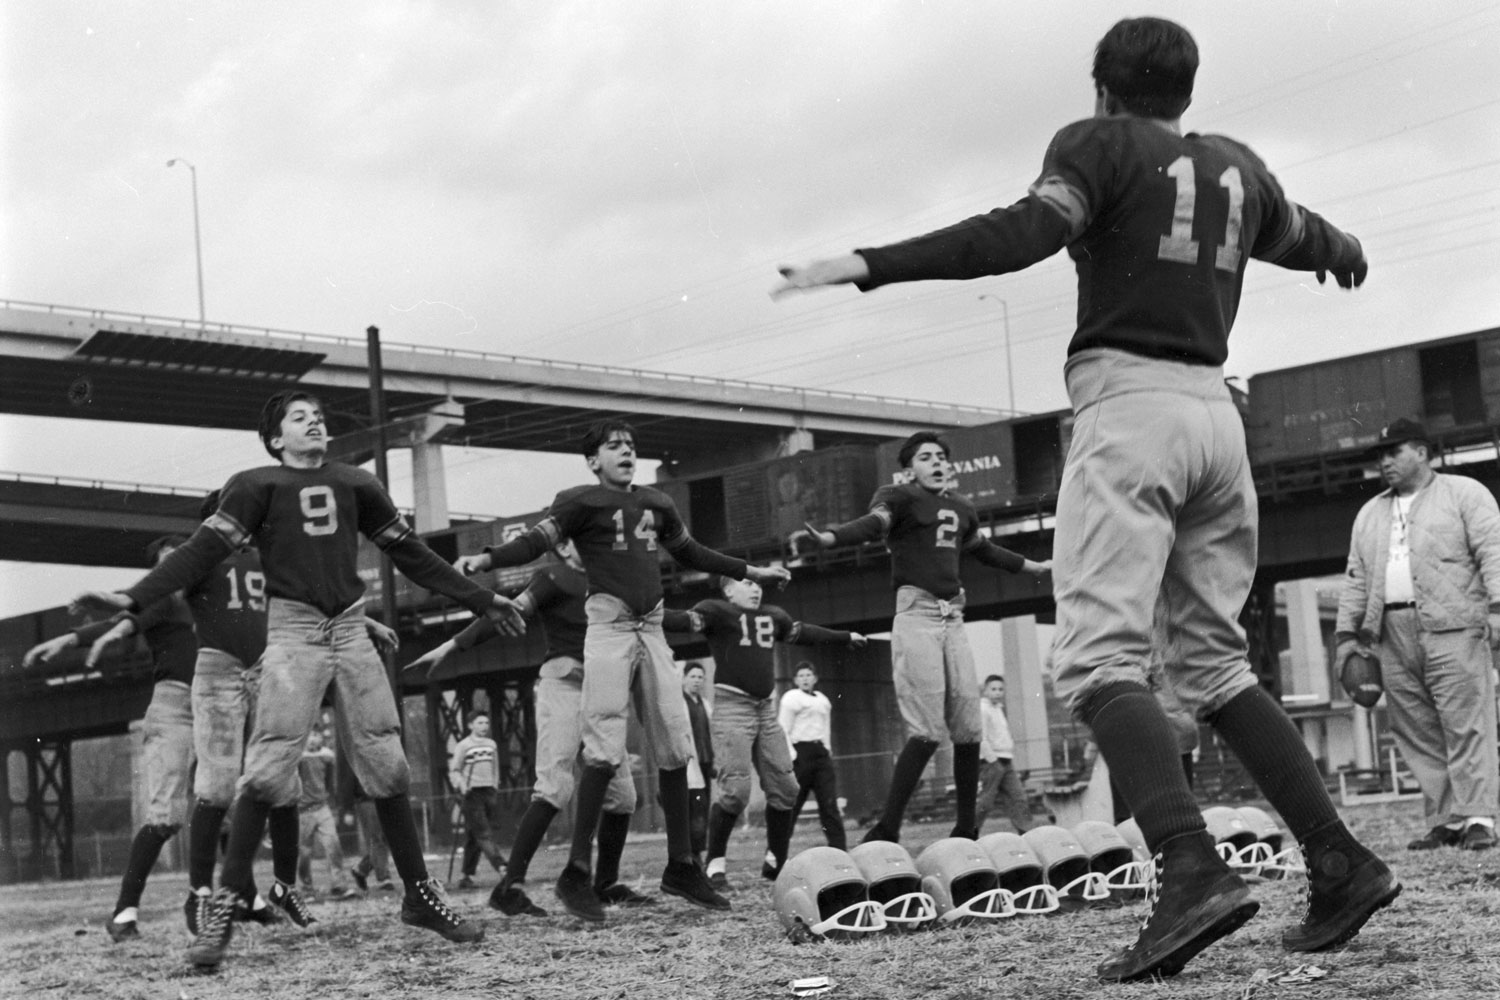 An American football team warms up before practice with some good 'ol jumping jacks in the late 1960's